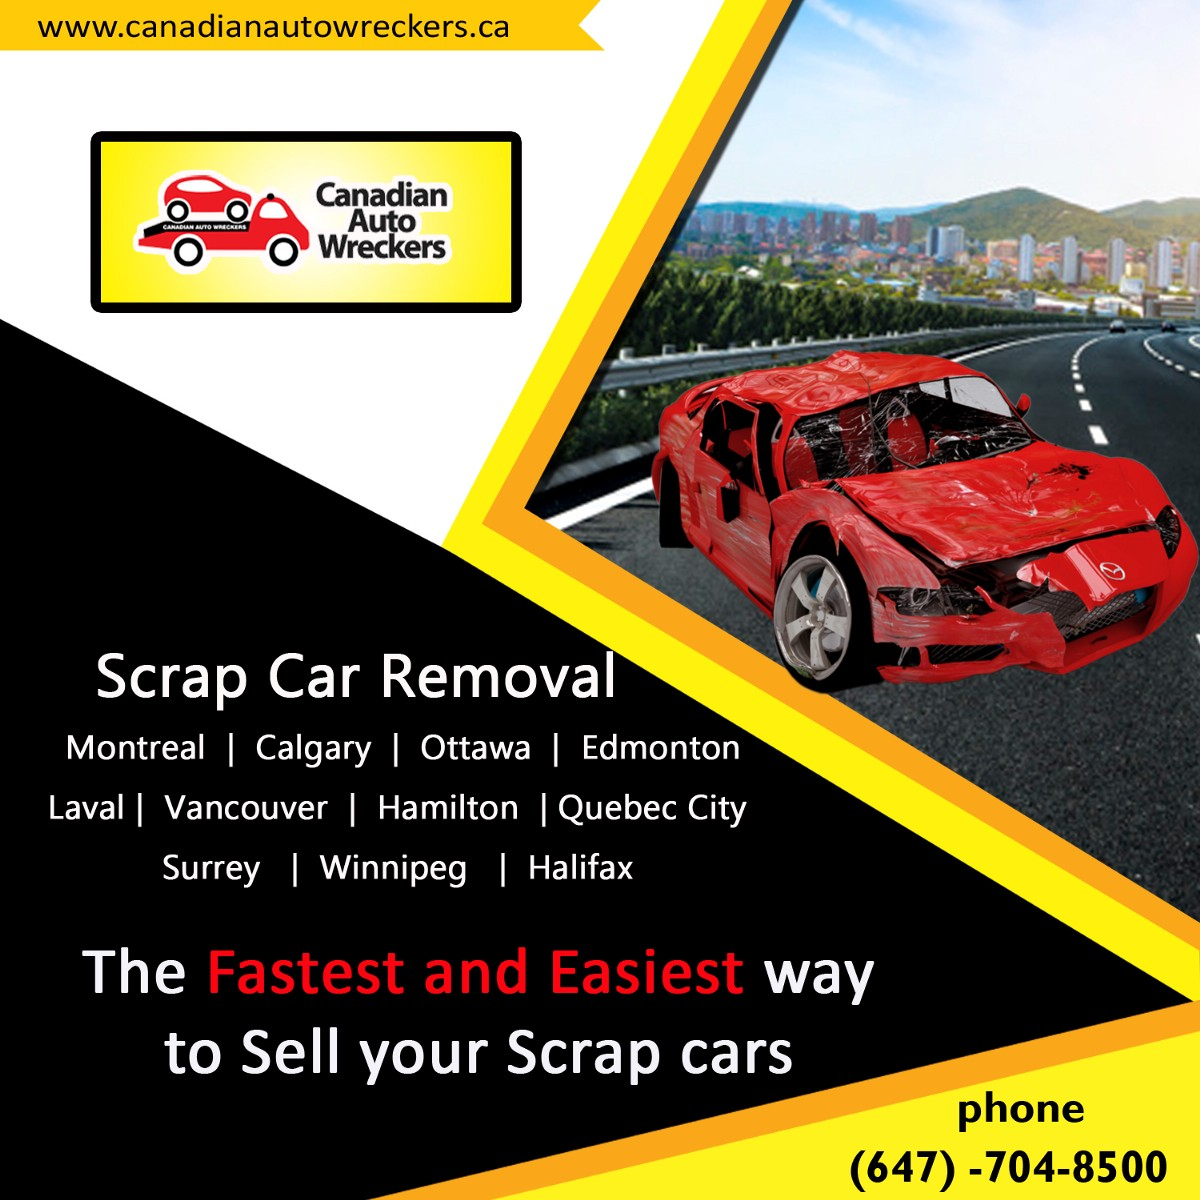 Scrap Car Removal Ottawa — Canadian Auto Wreckers Providing Employment